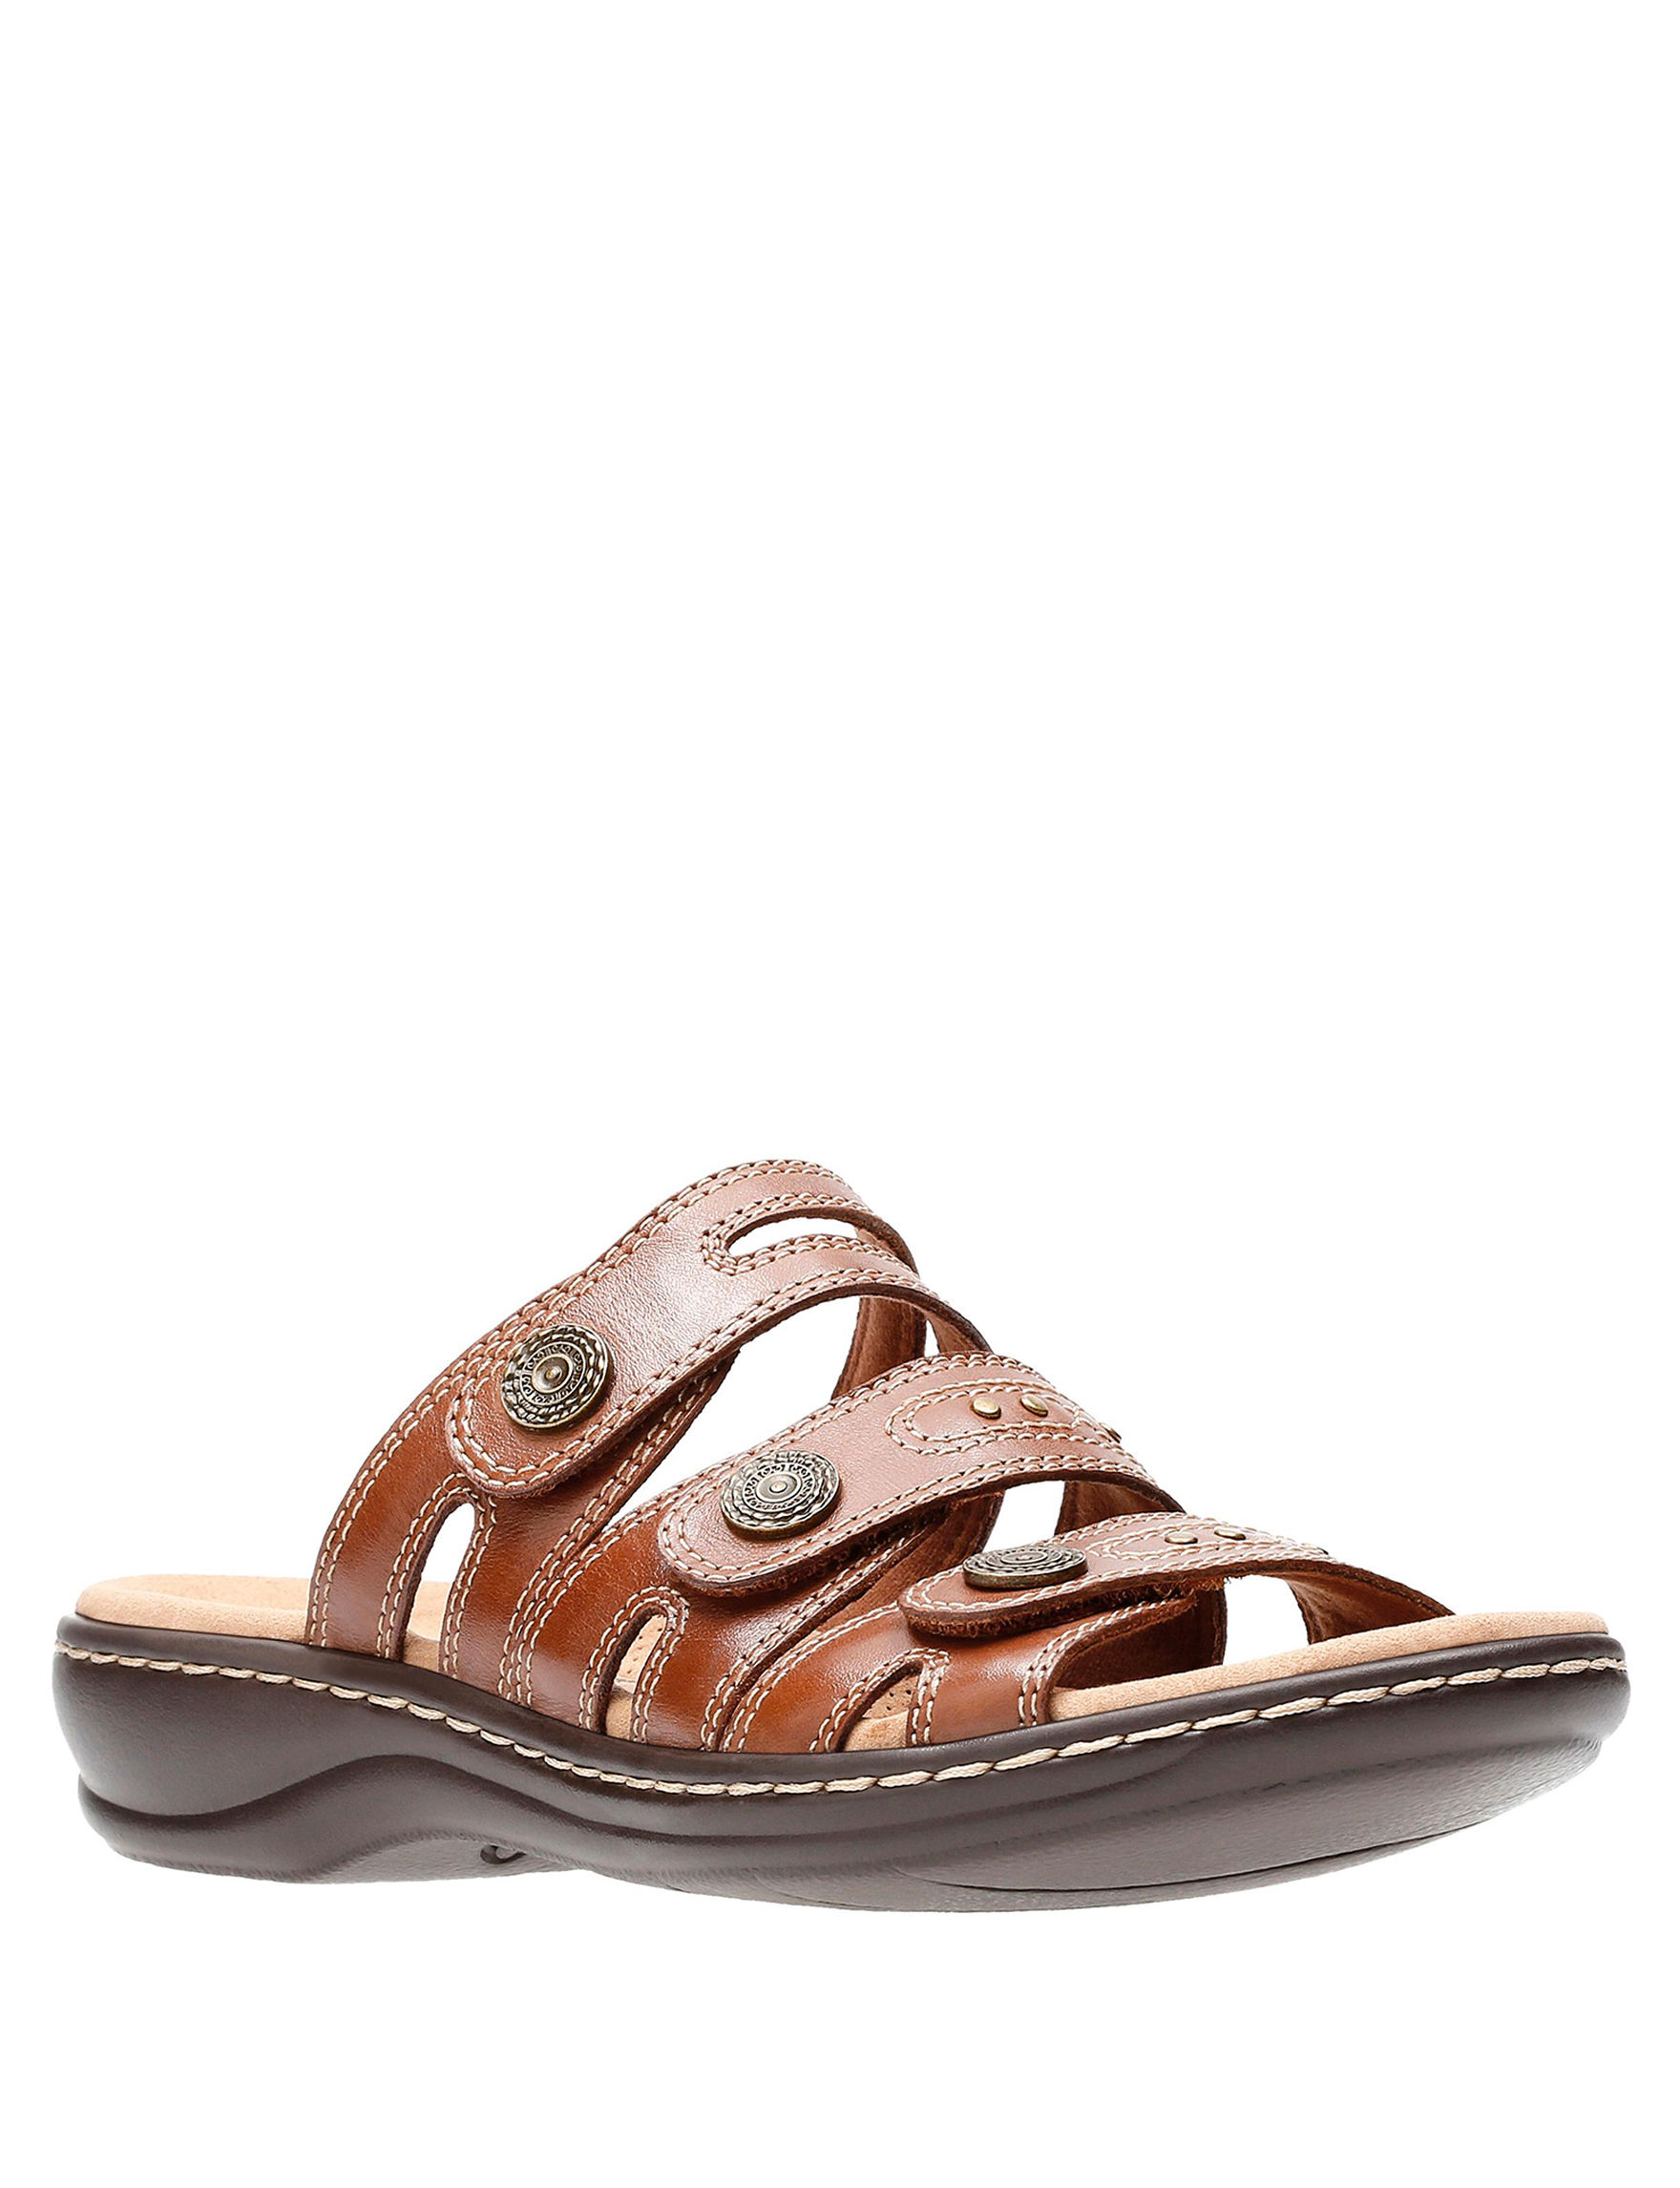 Clarks Tan Comfort Shoes Flat Sandals